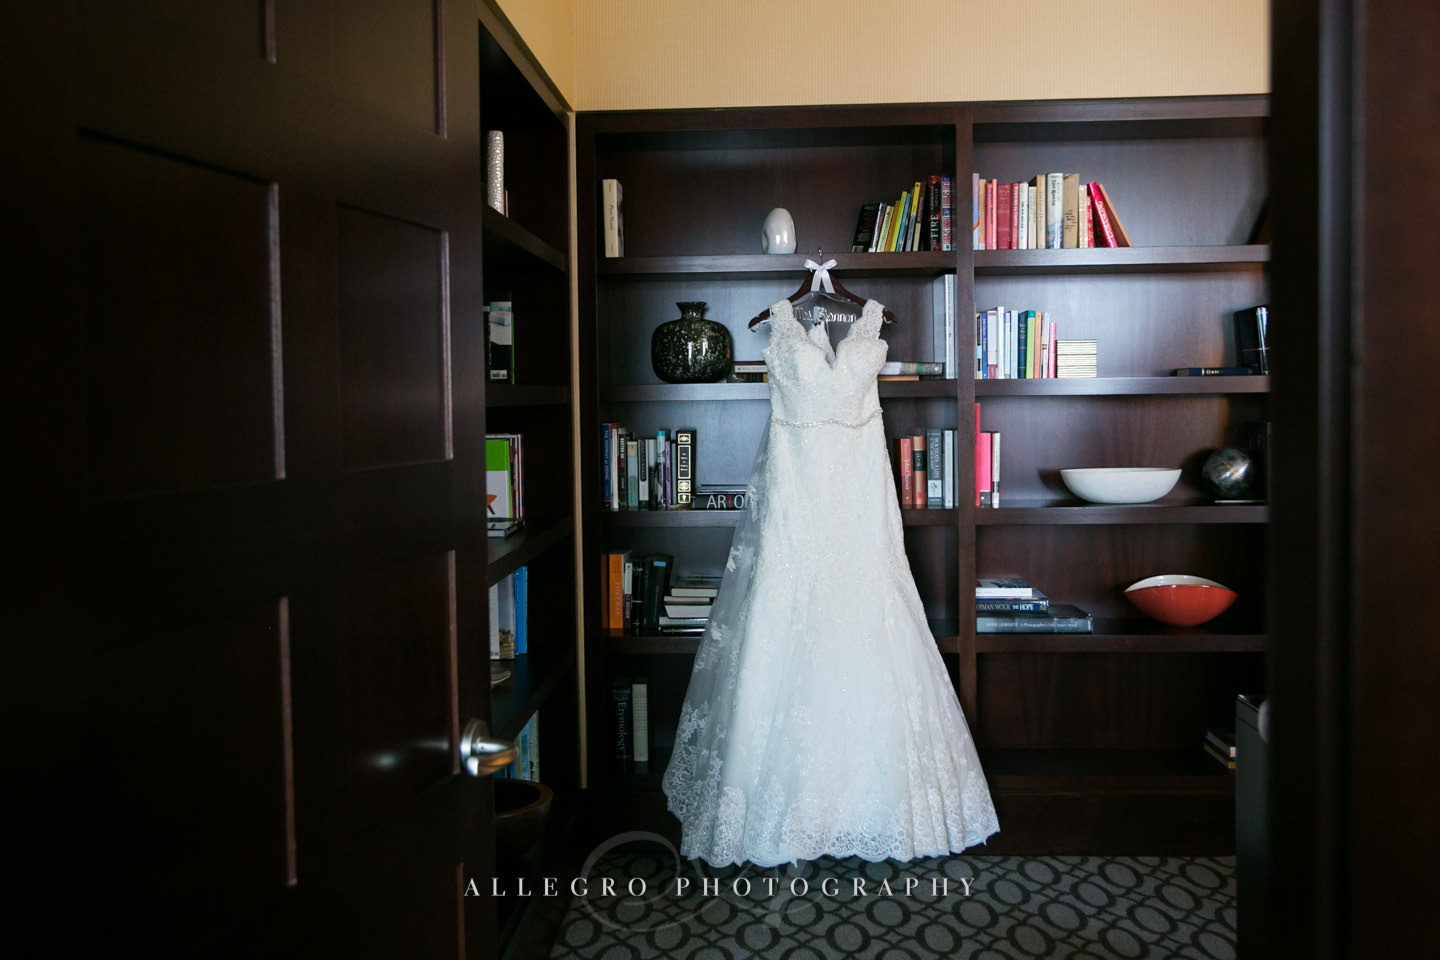 wedding dress hanging on bookshelves